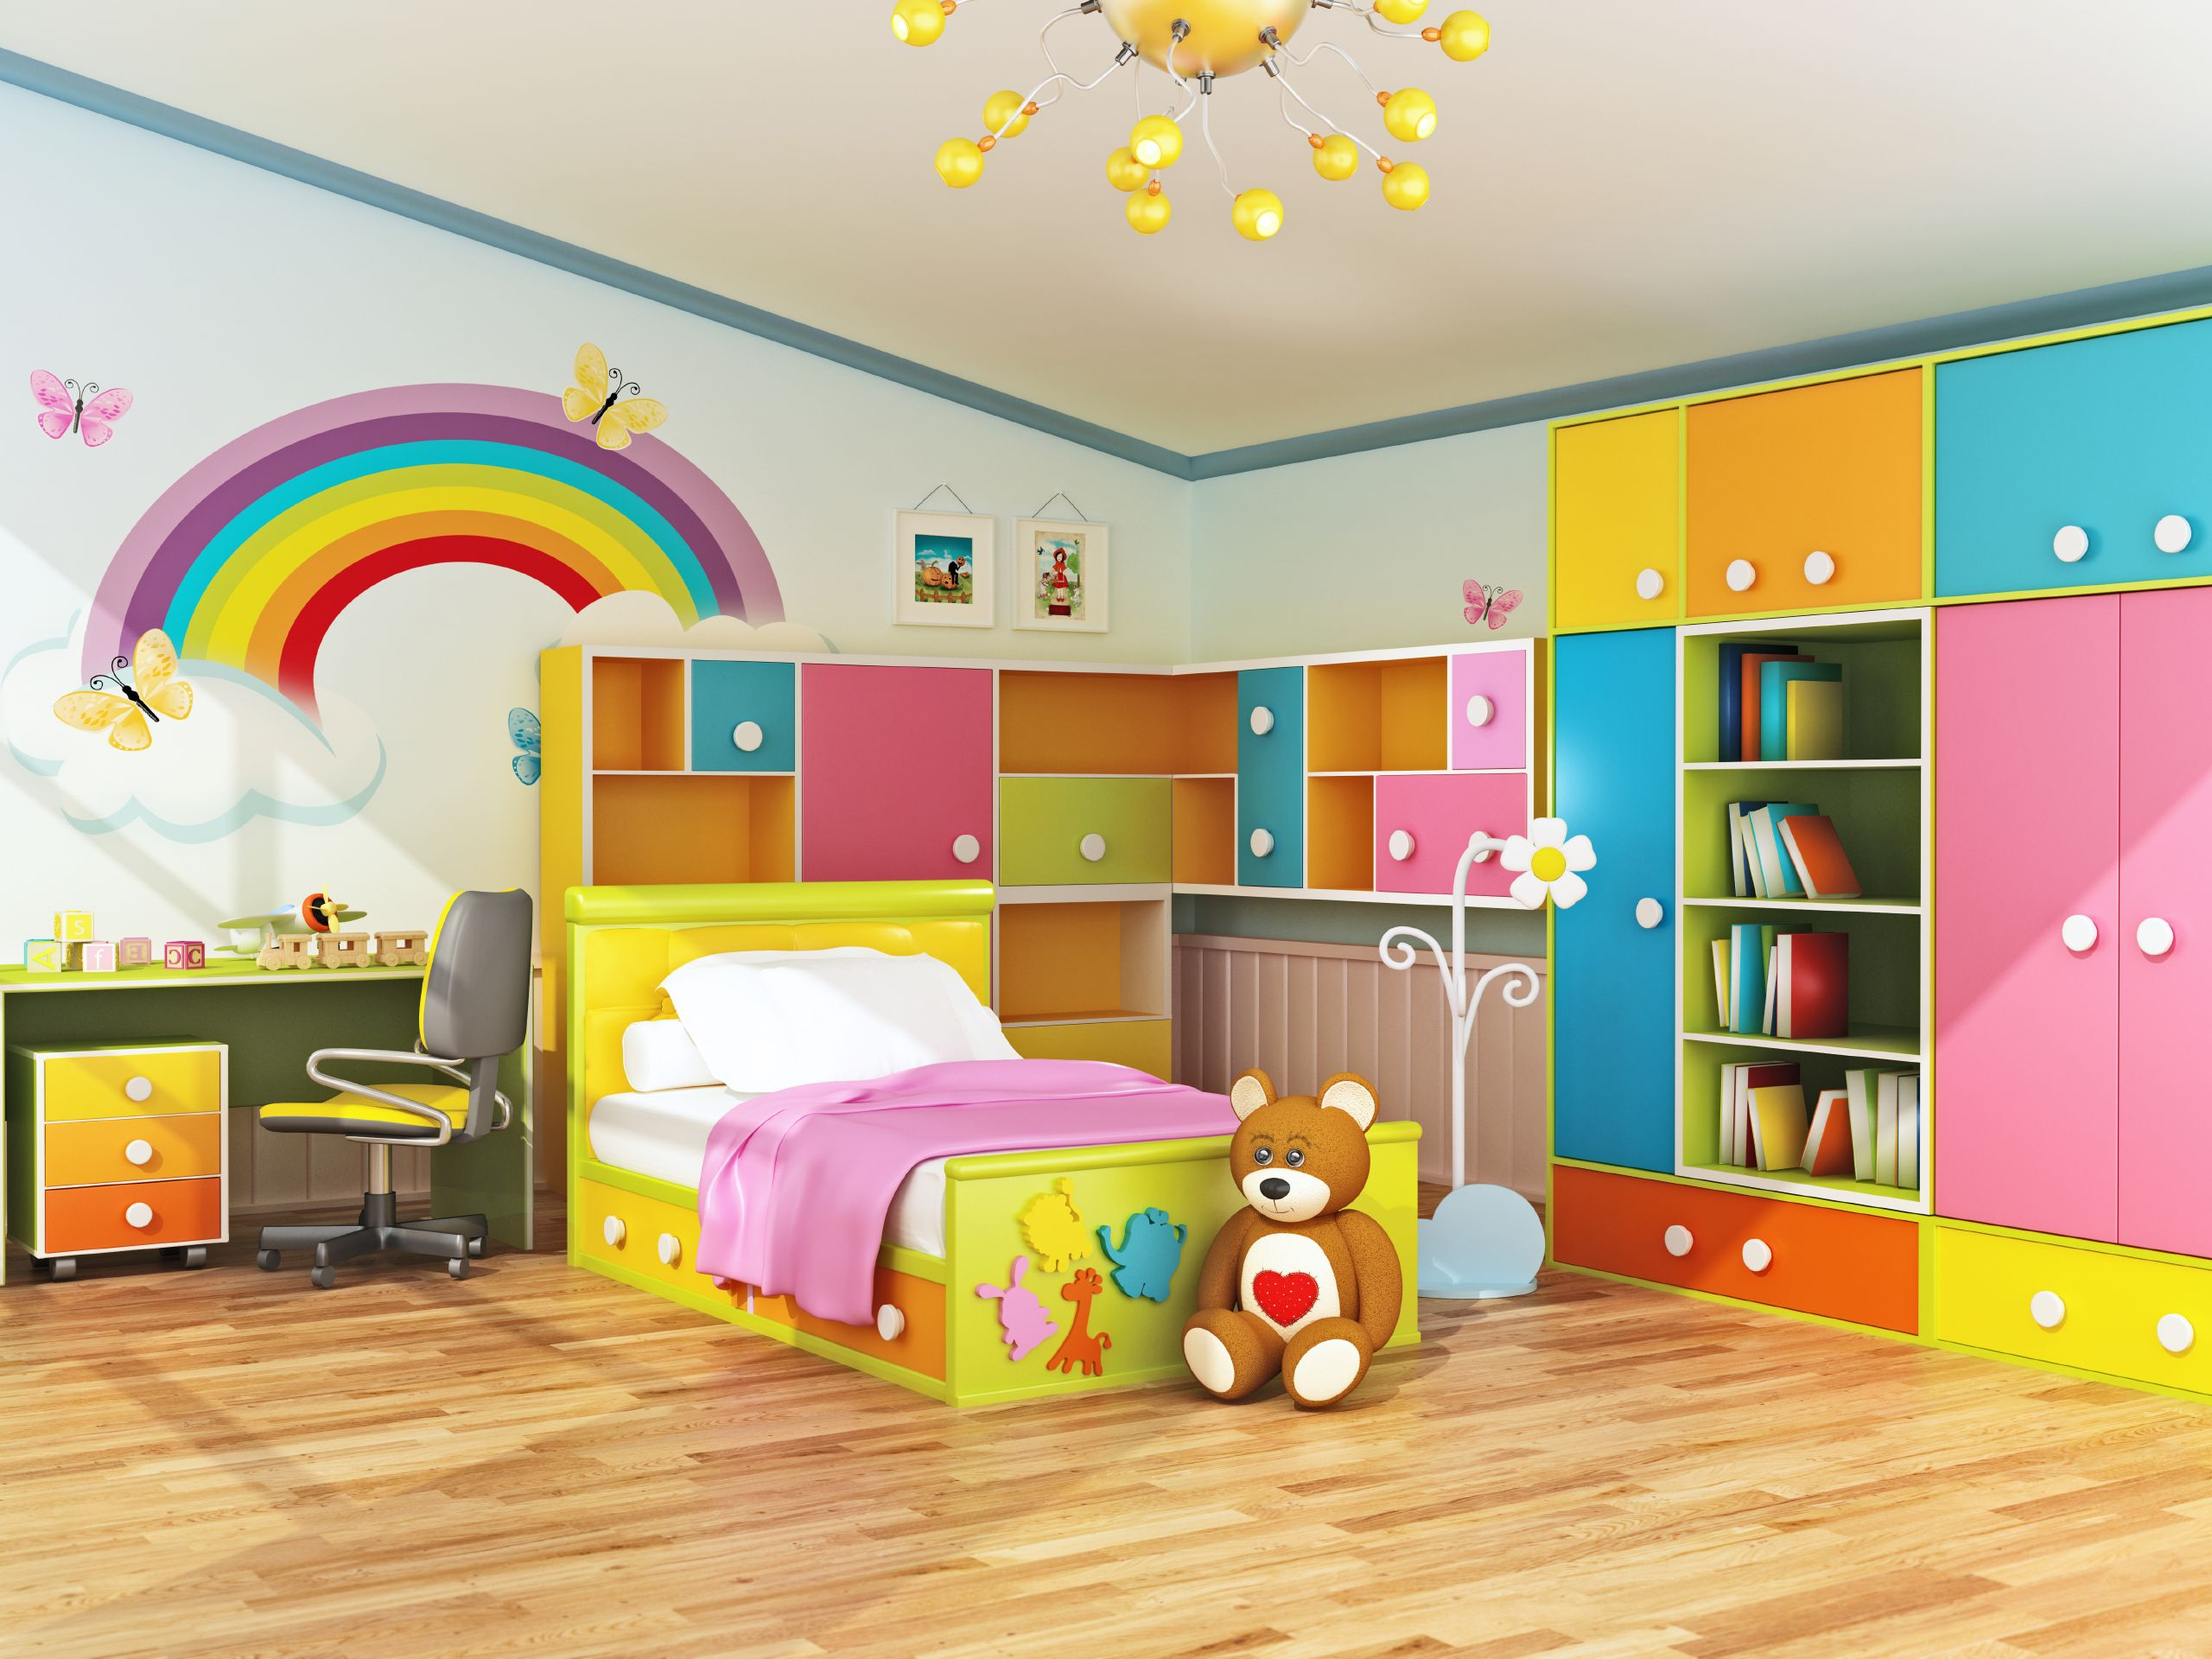 Plan Ahead When Decorating Kids Bedrooms Simple Kids Bedrooms Kids Bedroom Designs Unique Kids Bedrooms